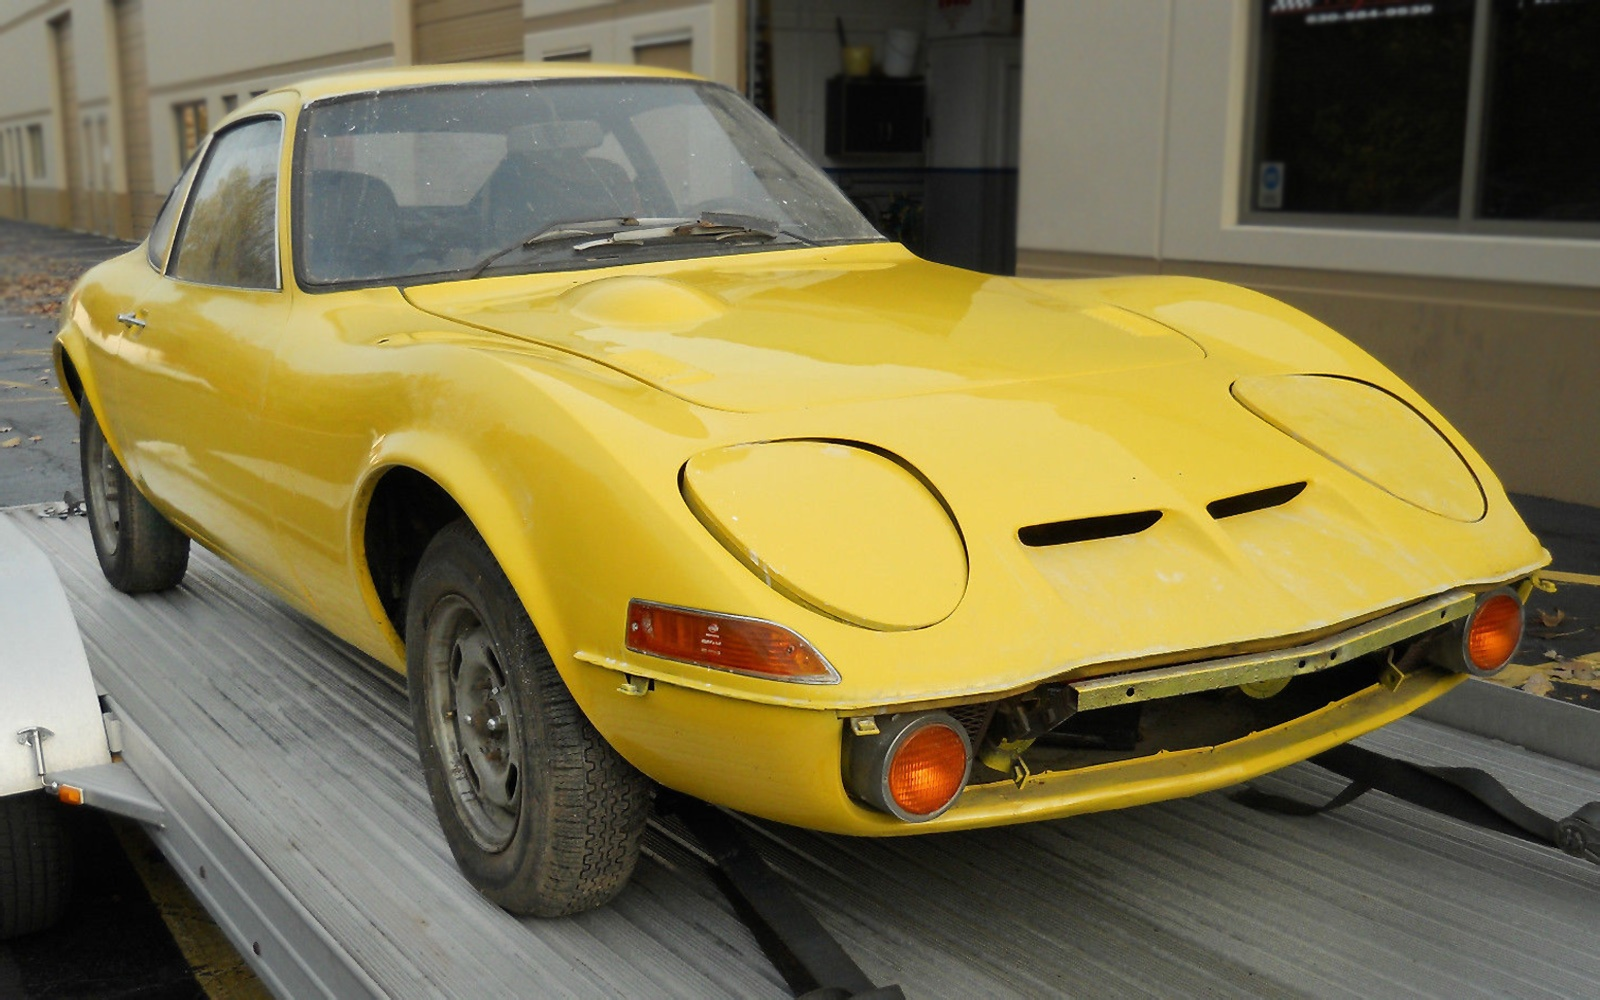 282205311550 besides Nolyedi Oyunu likewise Ready To Drive 1978 Triumph Spitfire additionally Toyota Corolla Ae86 For Sale Ebay Toyota Corolla Ae86 For Sale Nz Toyota Corolla Ae86 For Sale Philippines further 1969 20Corvette 20427 20390hp 20Convertible 20For 20Sale 20Stock 202368C. on craigslist car parts